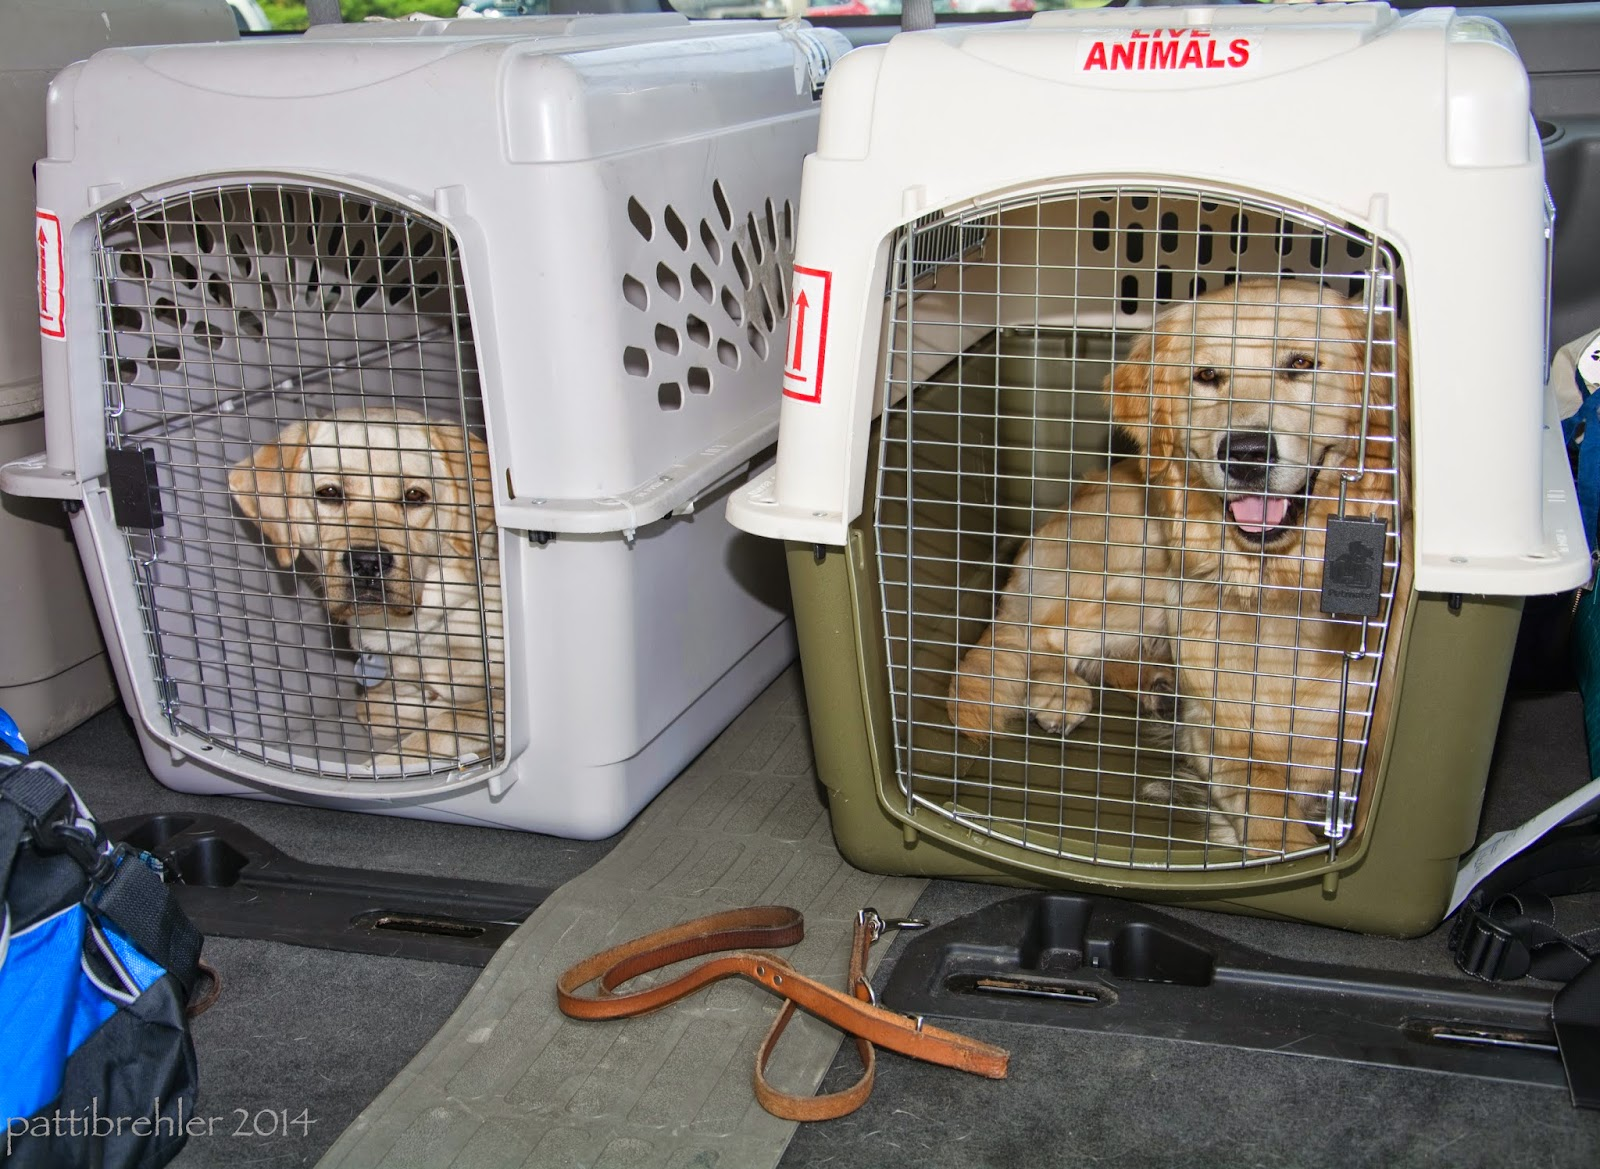 Two airline crates hold a yellow lab (left) and a golden retriever. The dogs are lying down looking toward the camera. The crates are in a van and there is a leash on the floor in front of them.